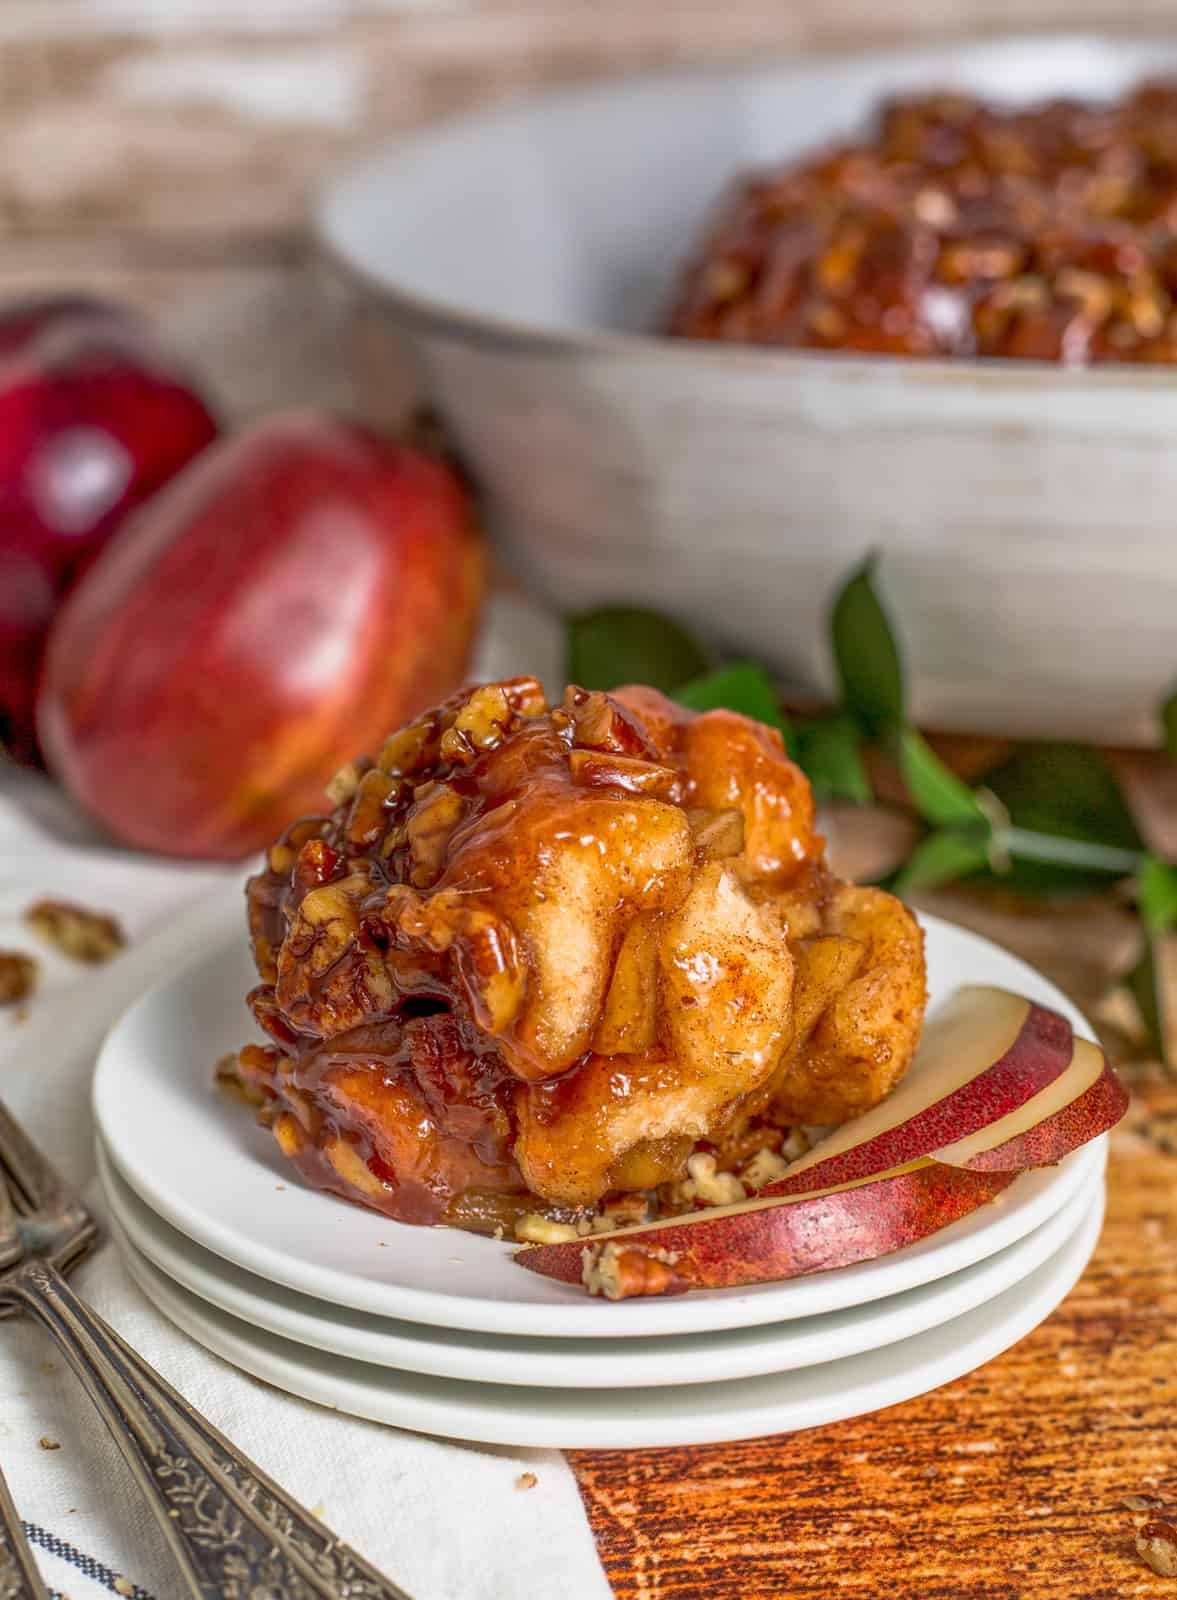 Apple Monkey Bread portion on white plate with slices of apples